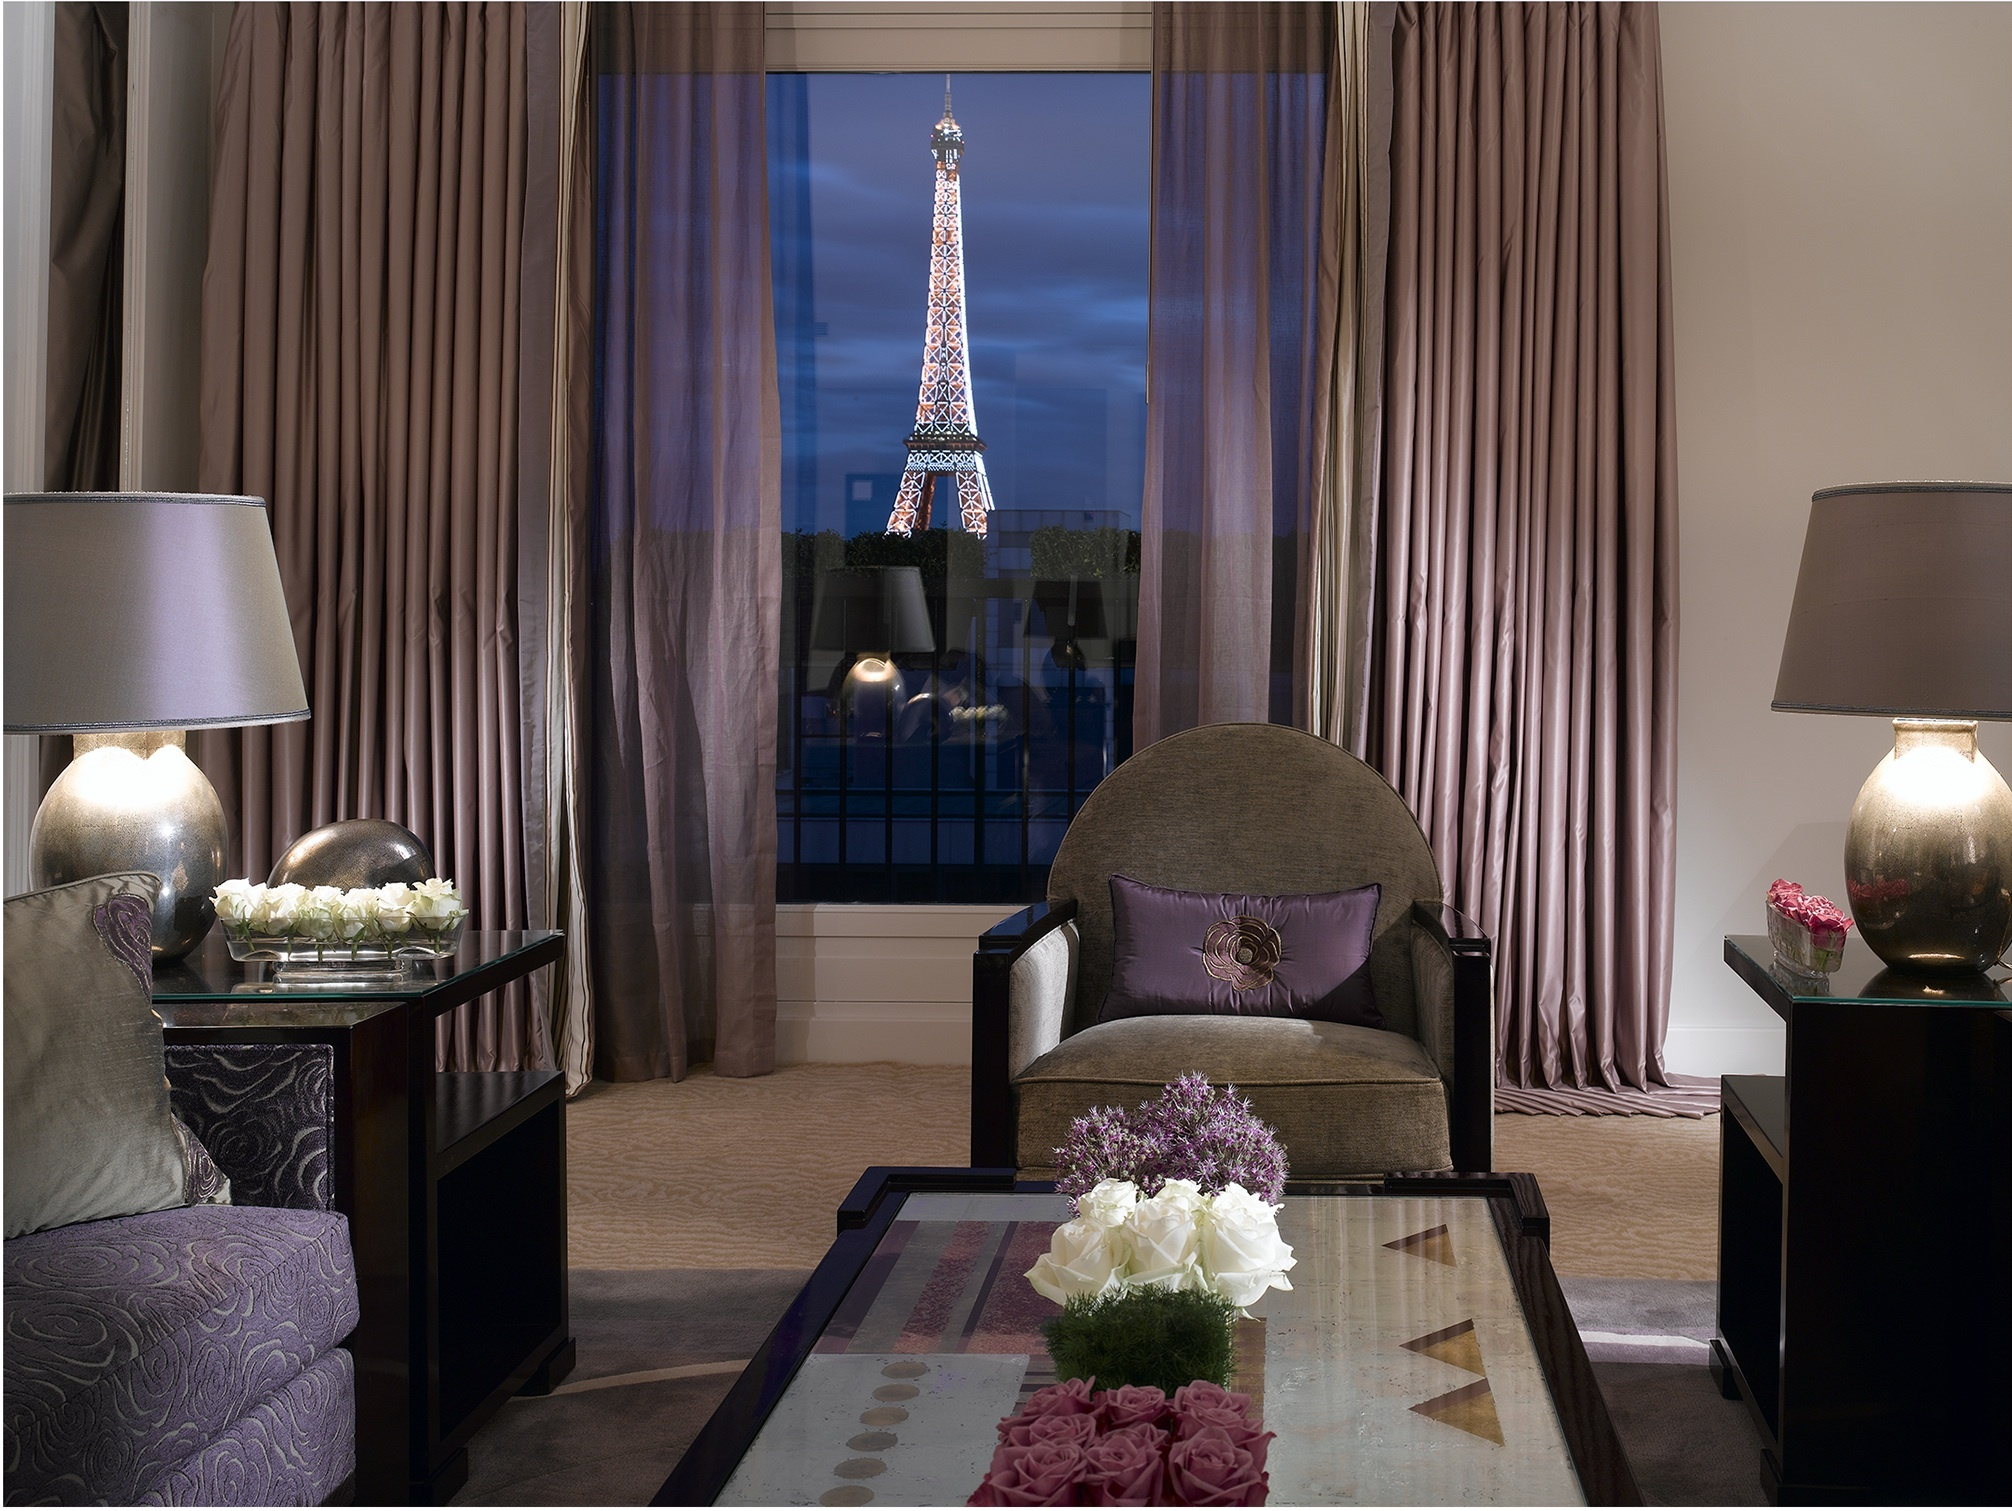 the hotel paris Choose from 3419 paris hotels with huge savings paris is known for its cafés, museums and architecture don't miss out on great hotels near notre dame cathedral.